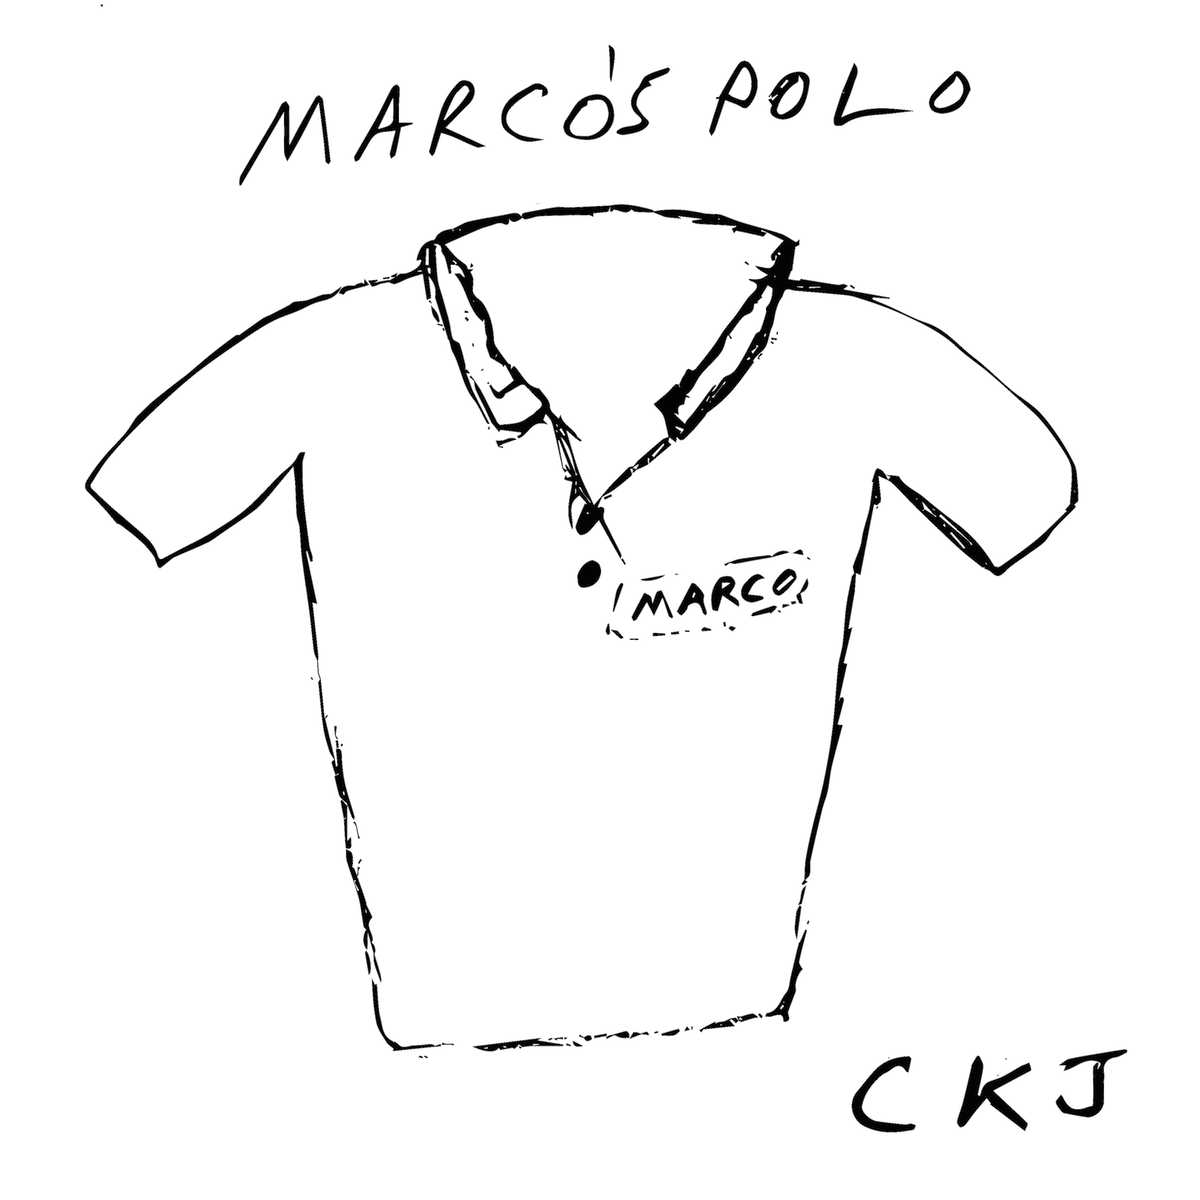 marcos polo.png